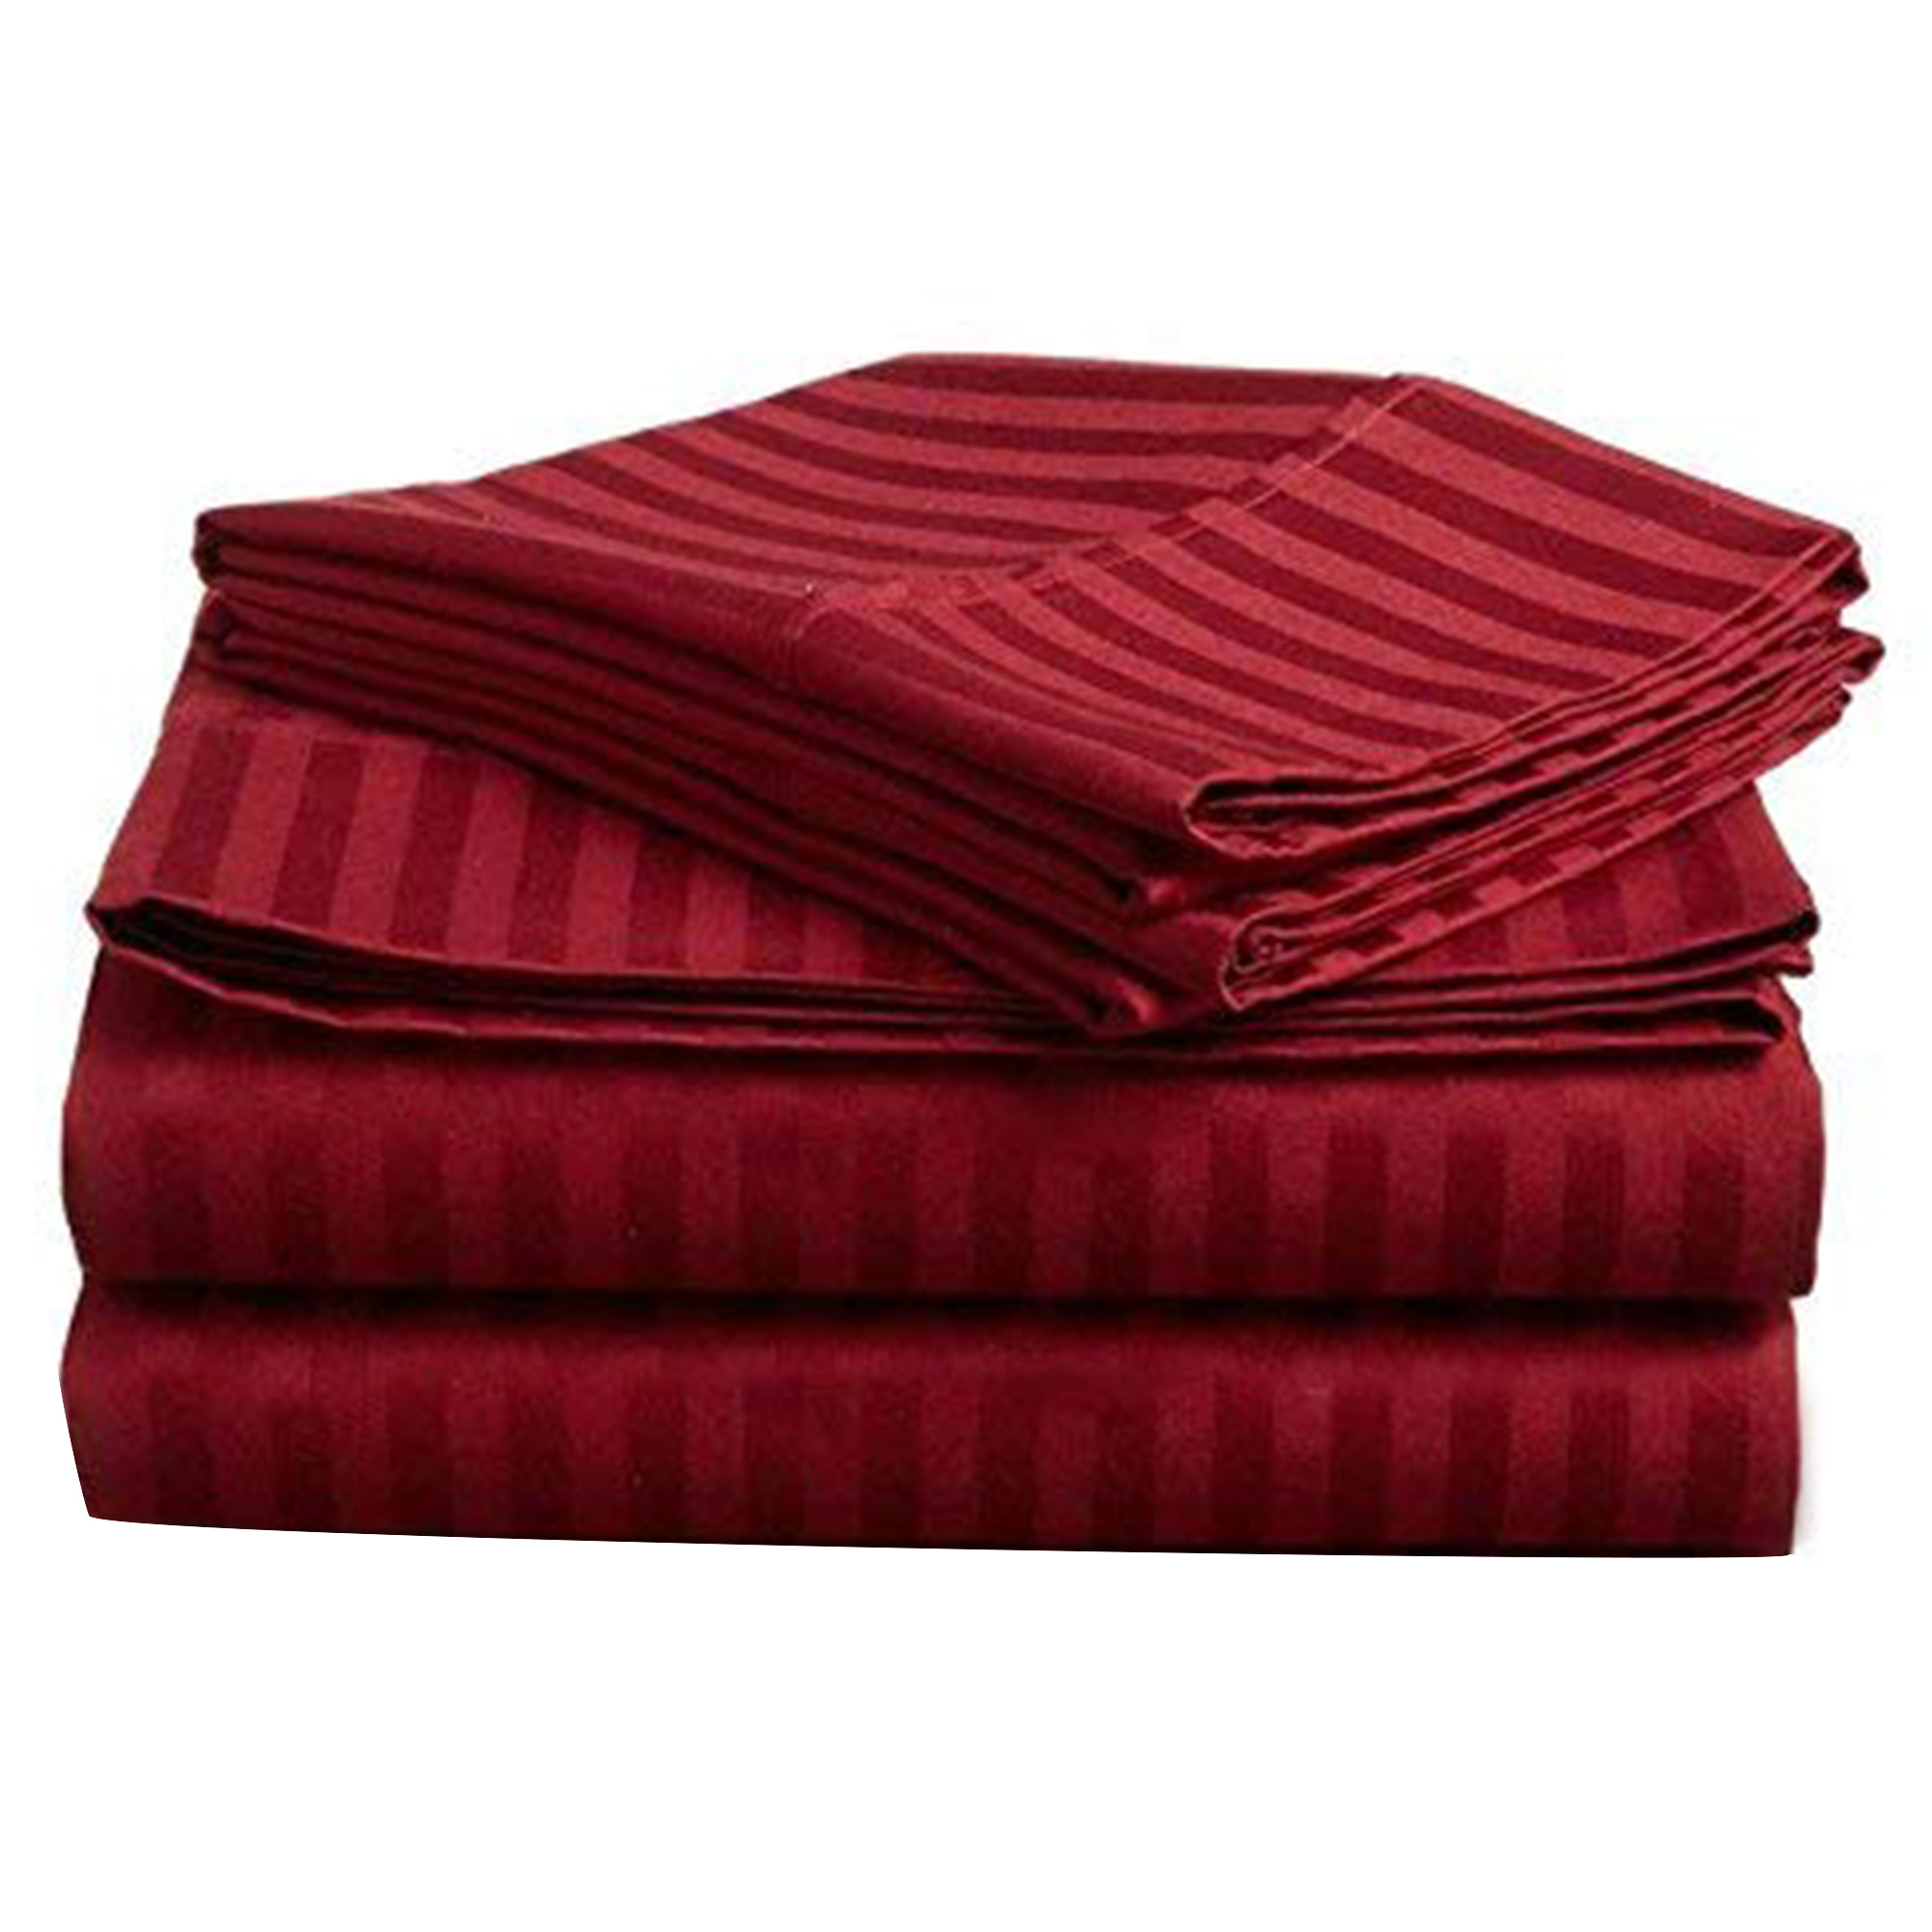 Elegant Red Colored Self Design Cotton Double Bedsheet With Pillow Cover